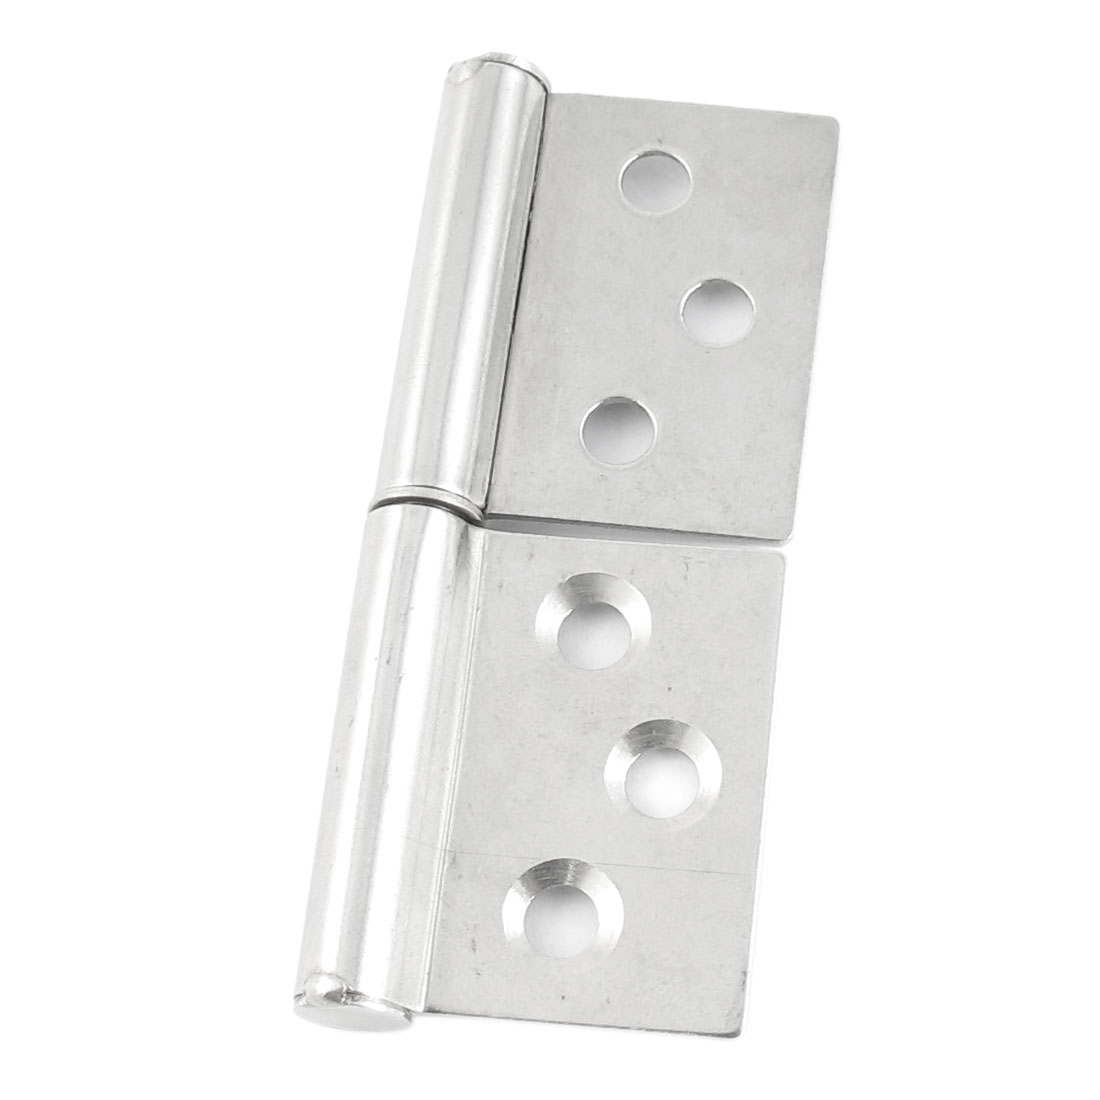 "Silver Tone Hardware 6 Holes Flag Window Cabinet Hinges 2.8"" Long"